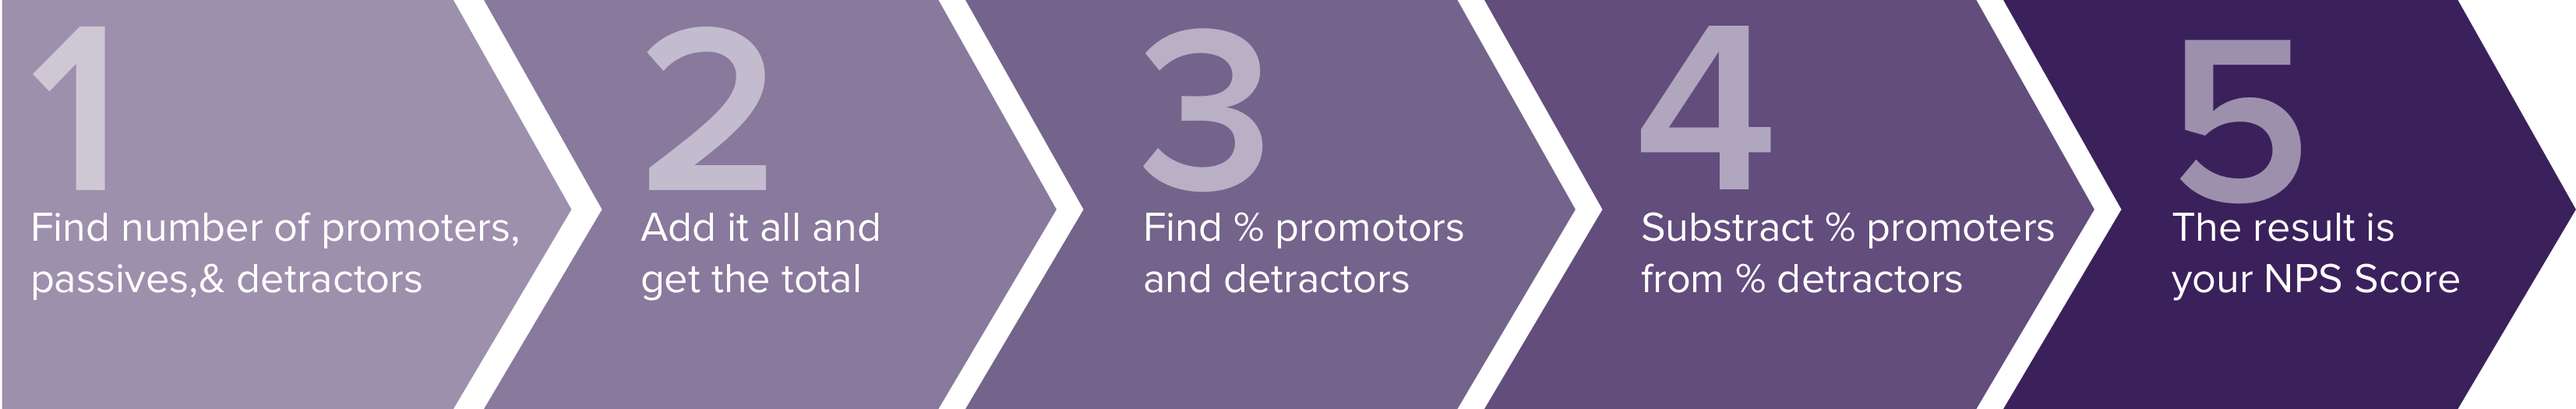 Calculate Net Promoter Score in these simple 5 steps.